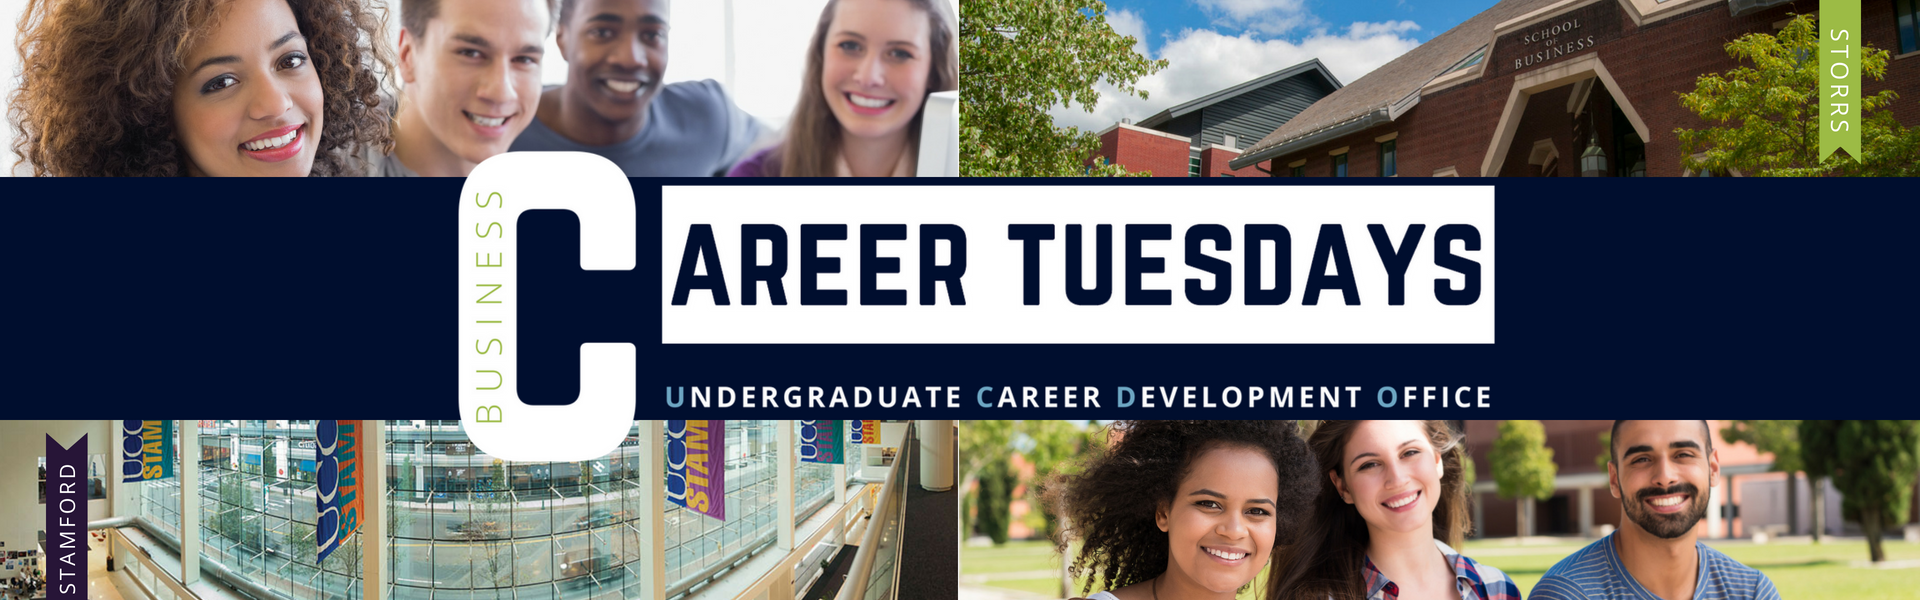 UConn School of Business Career Tuesdays